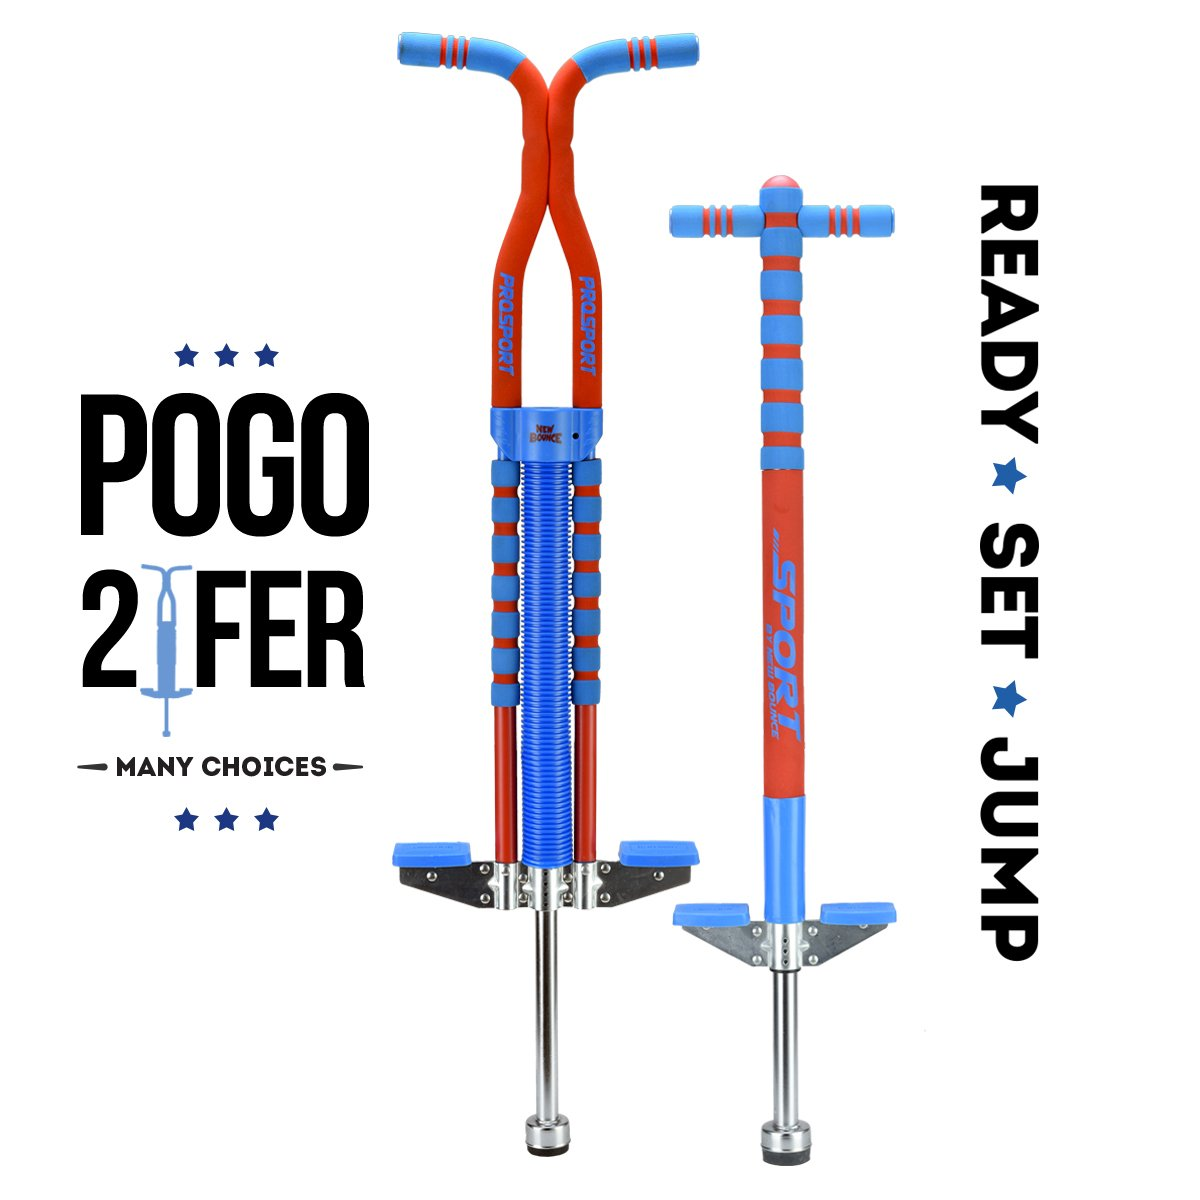 New Bounce 2 Pack Combo Set Soft, Easy Grip Sport Pogo Stick and Pro Sport Pogo by New Bounce